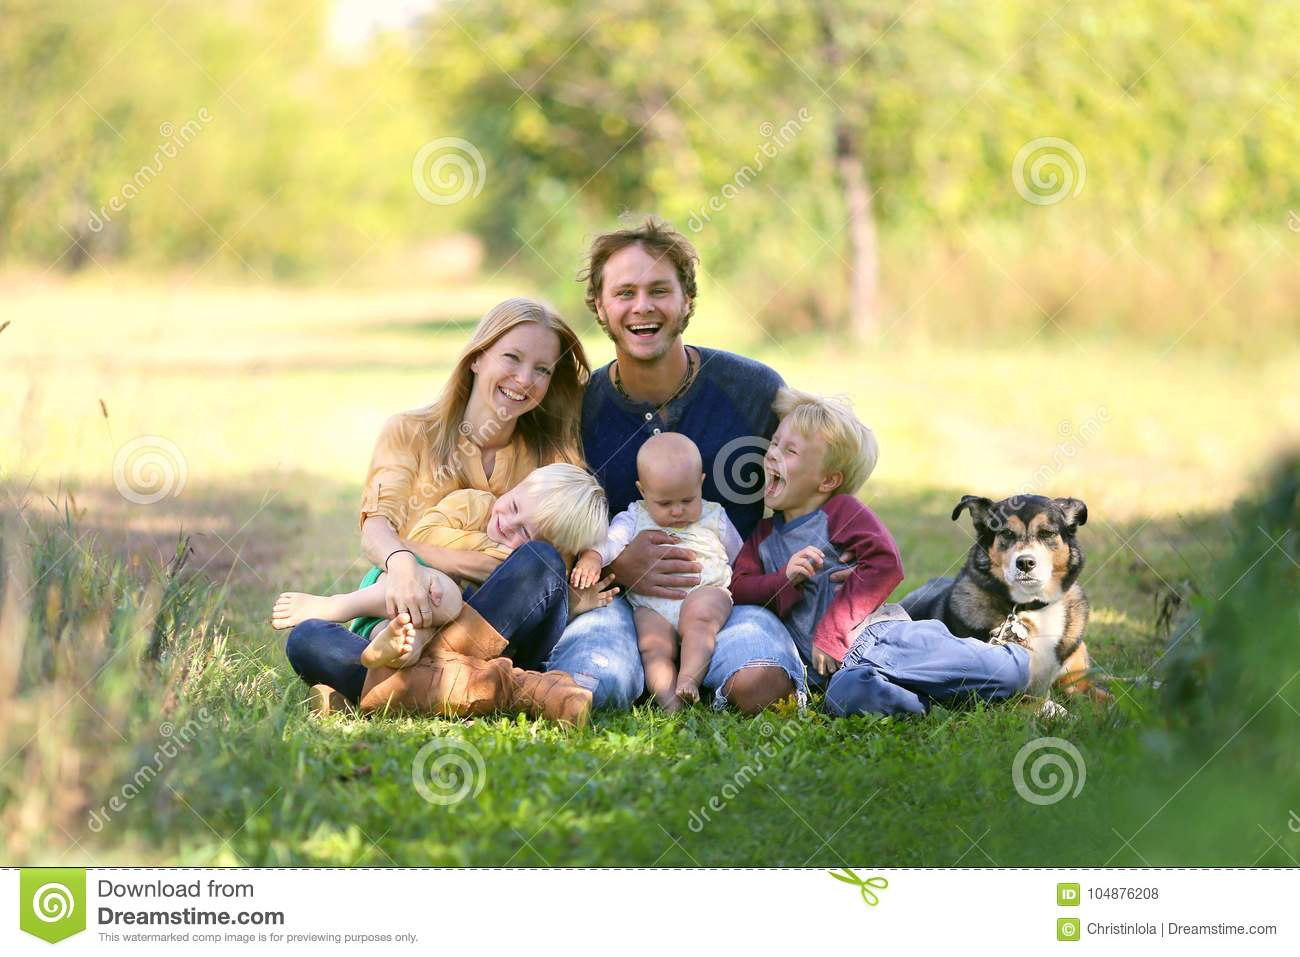 Happy Family Laughing Together with Dog Outside